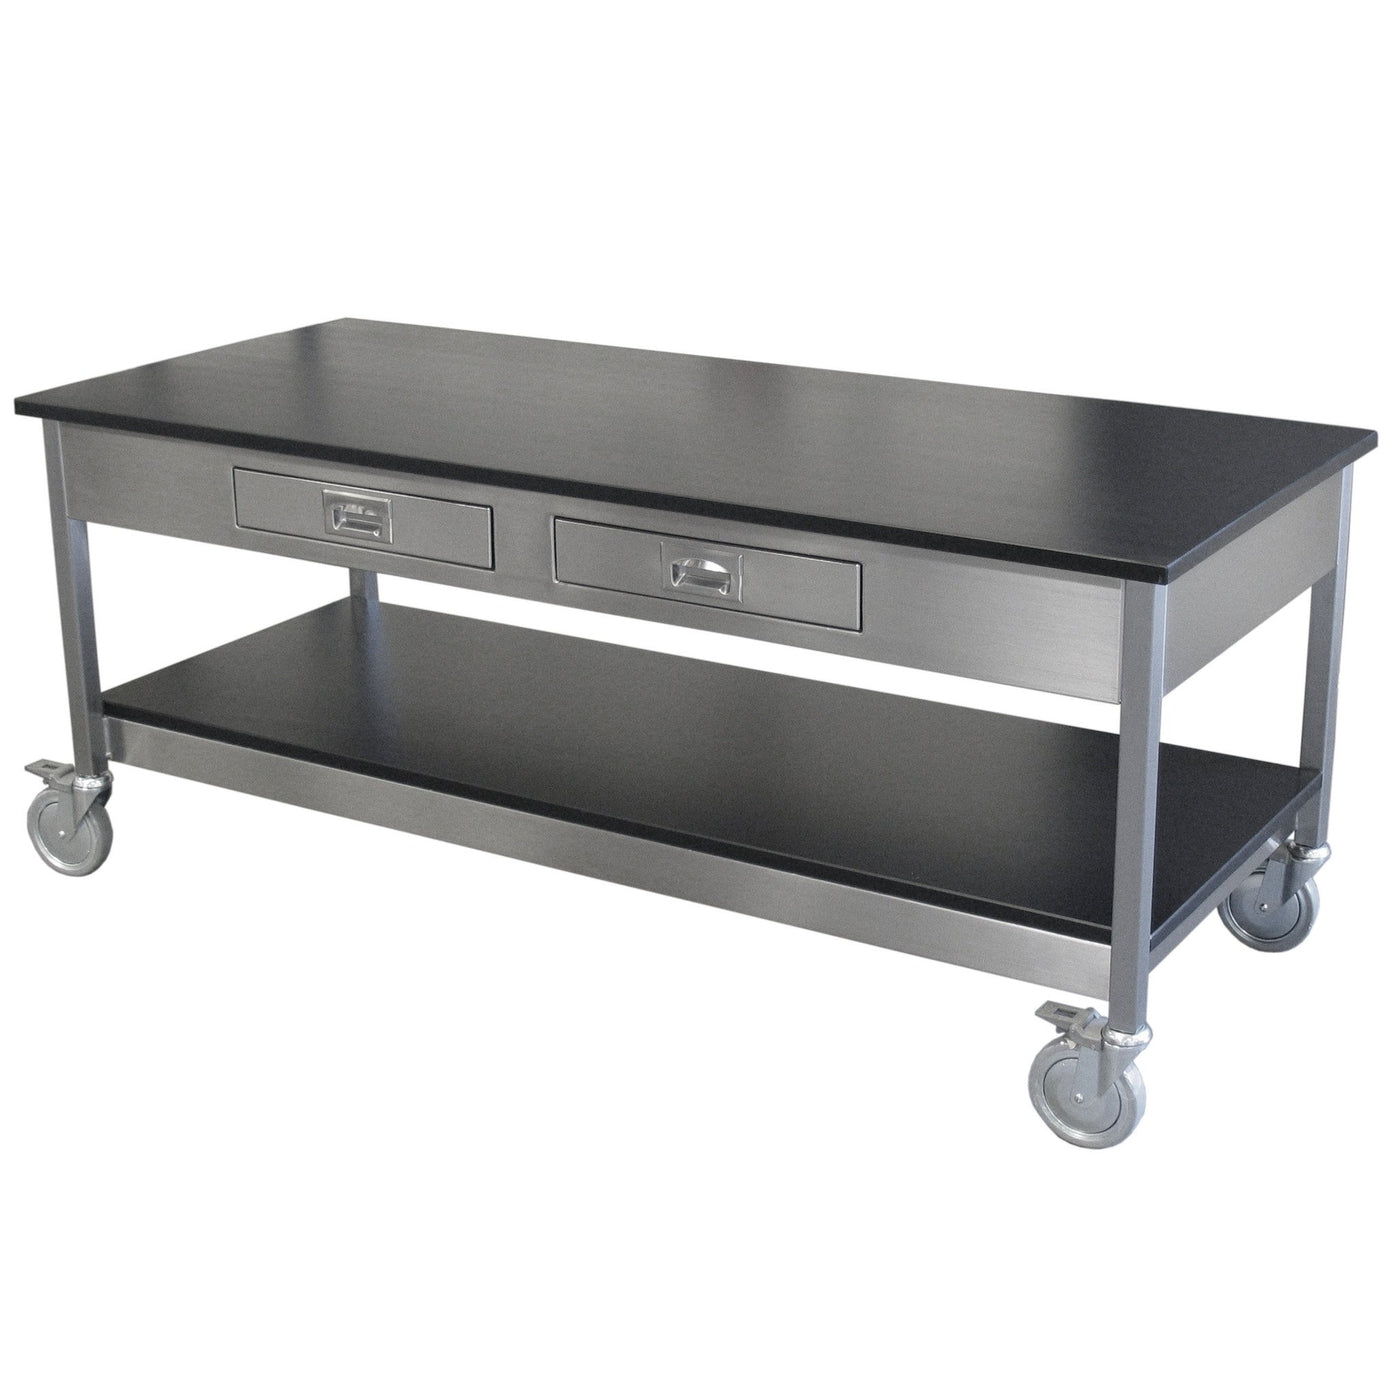 Epoxy Lab Table-Anatomy Dissection Tables-Mortech Manufacturing Company Inc. Quality Stainless Steel Autopsy, Morgue, Funeral Home, Necropsy, Veterinary / Anatomy, Dissection Equipment and Accessories